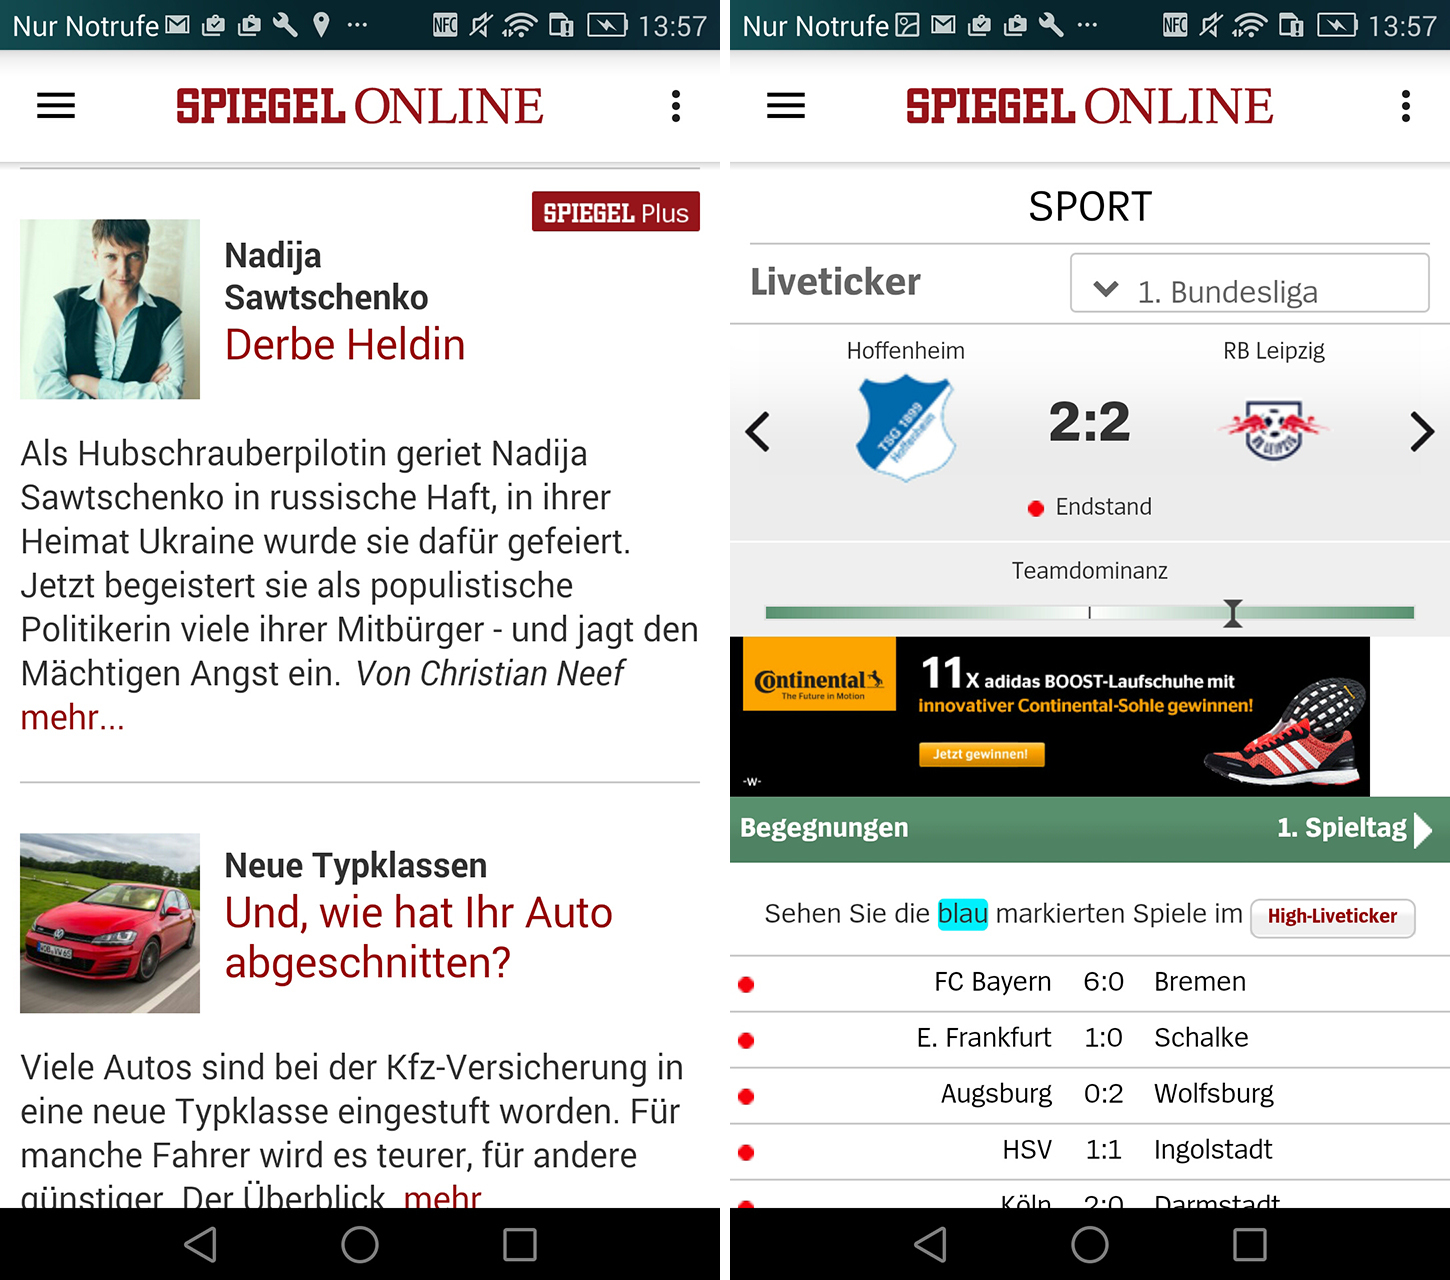 Spiegrl Online Spiegel Online Android App Download Chip